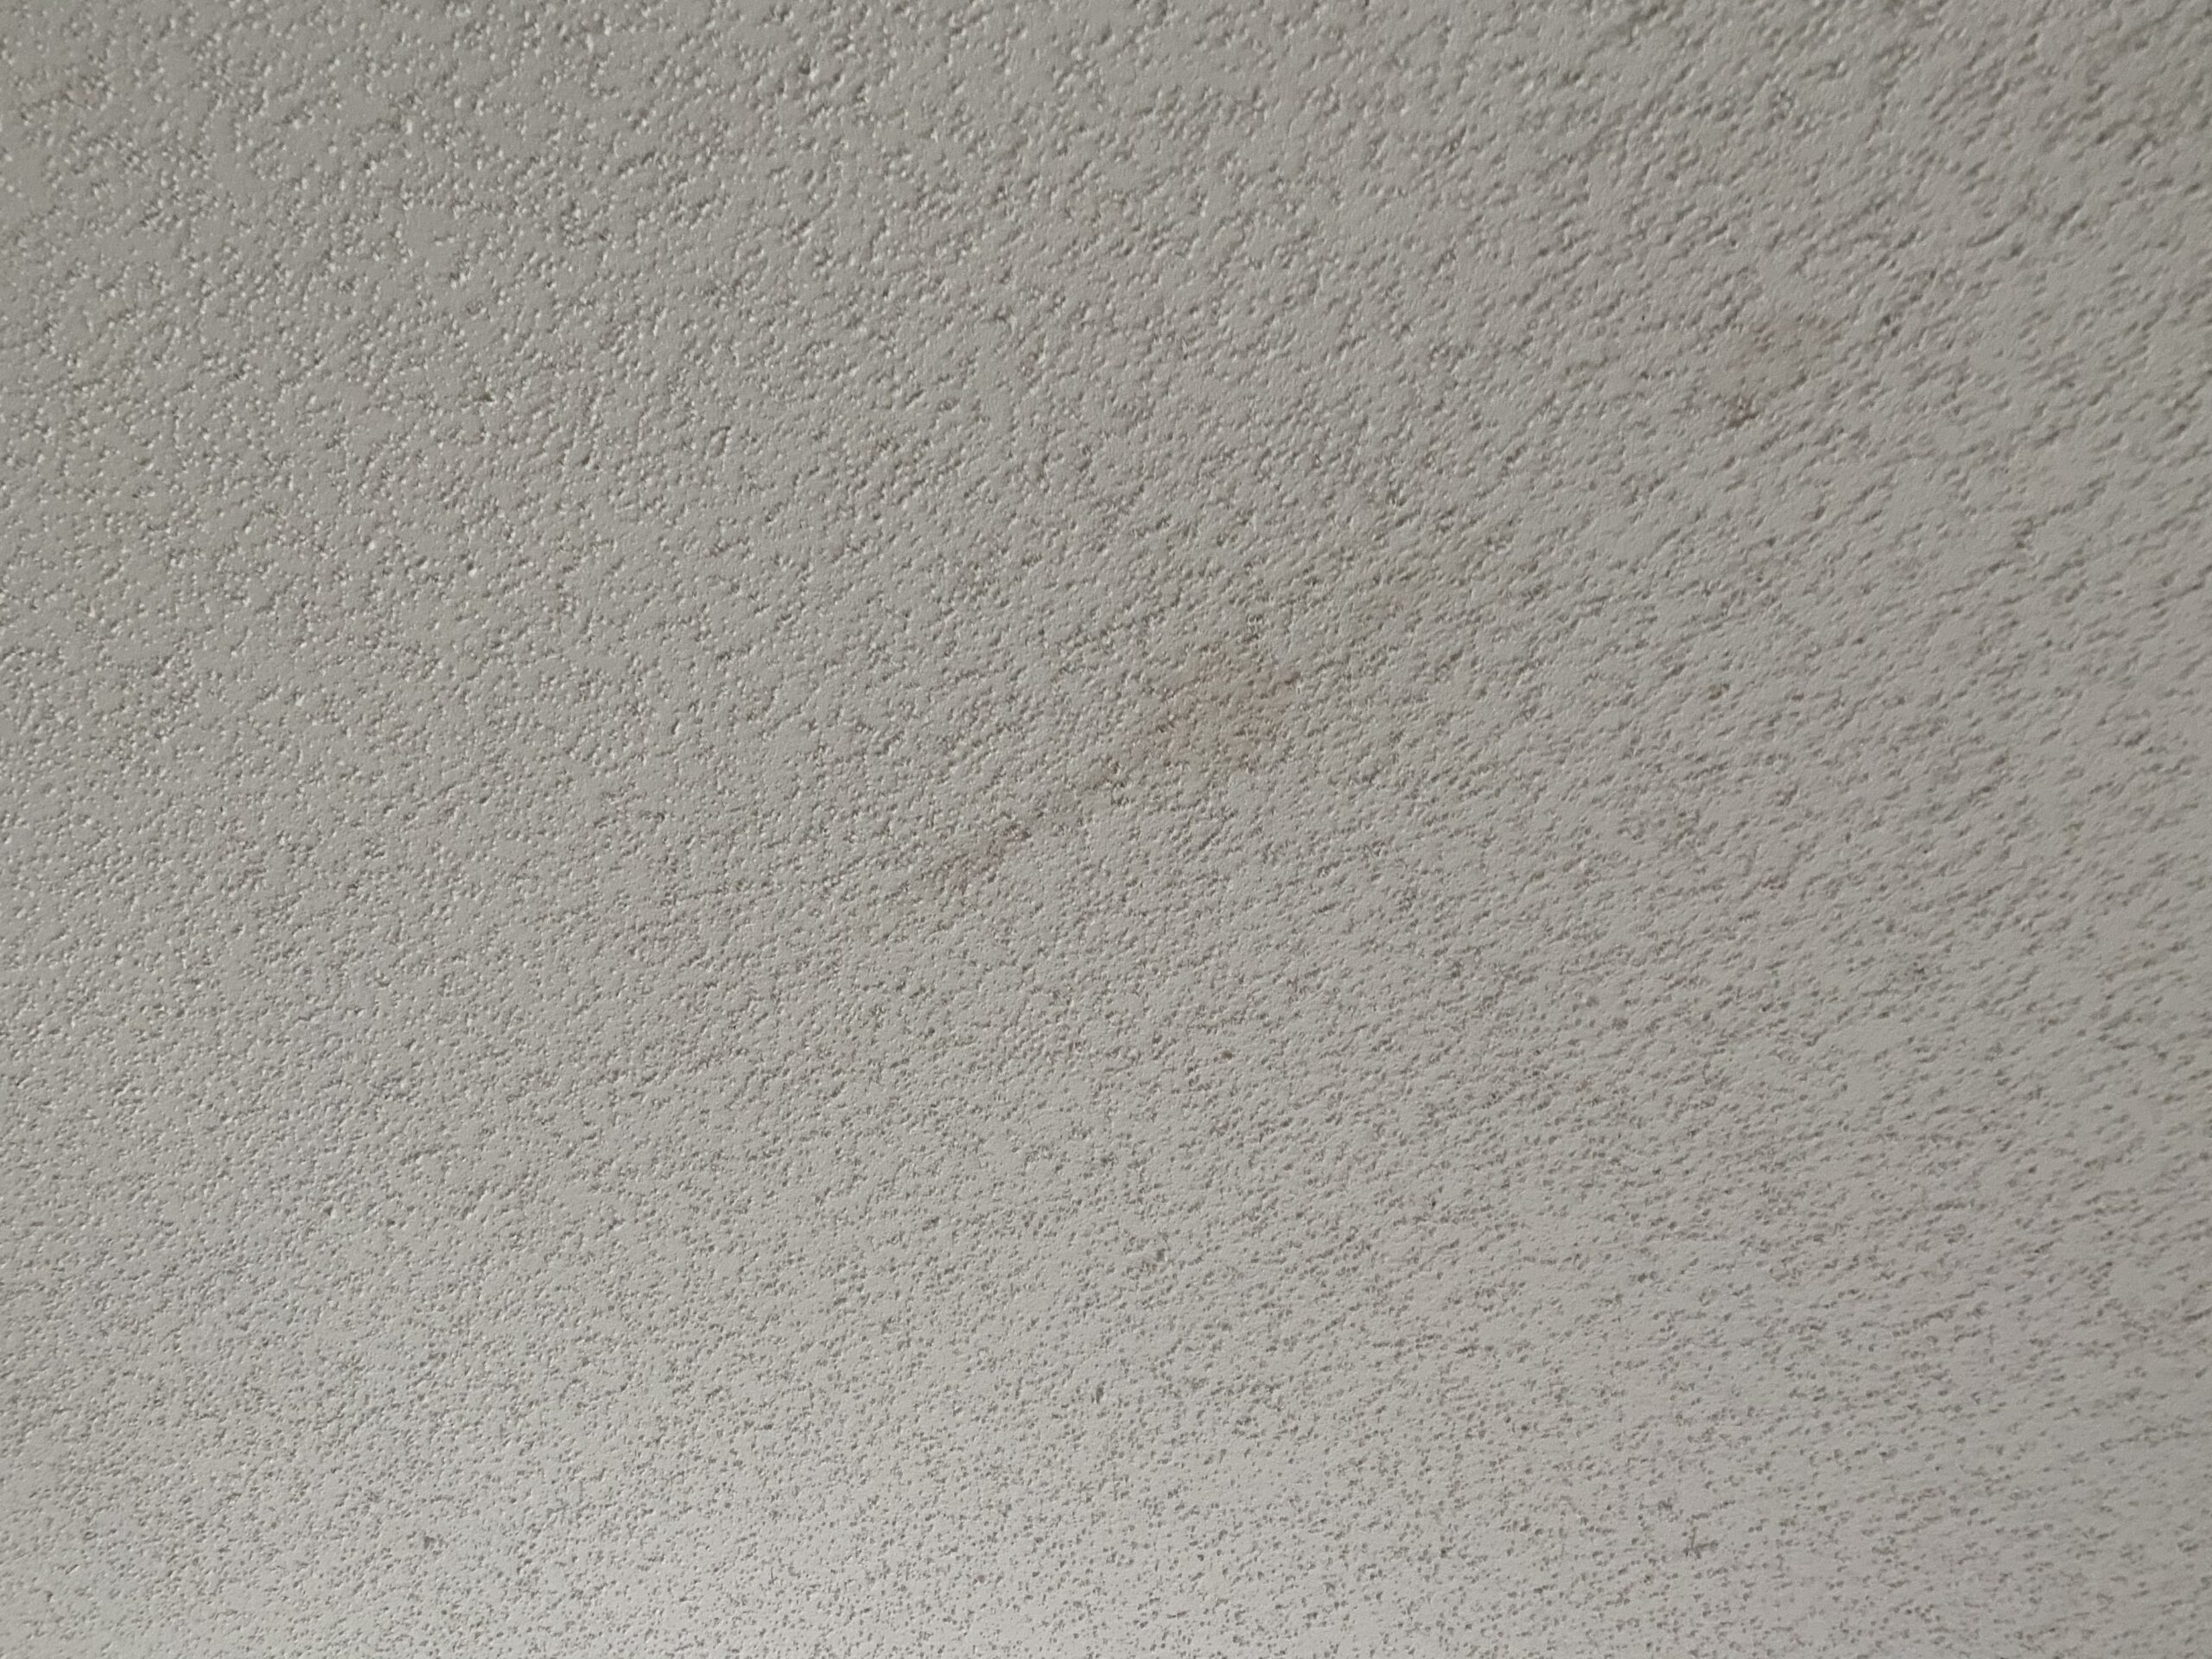 here is a ceiling stain in the hallway of this home